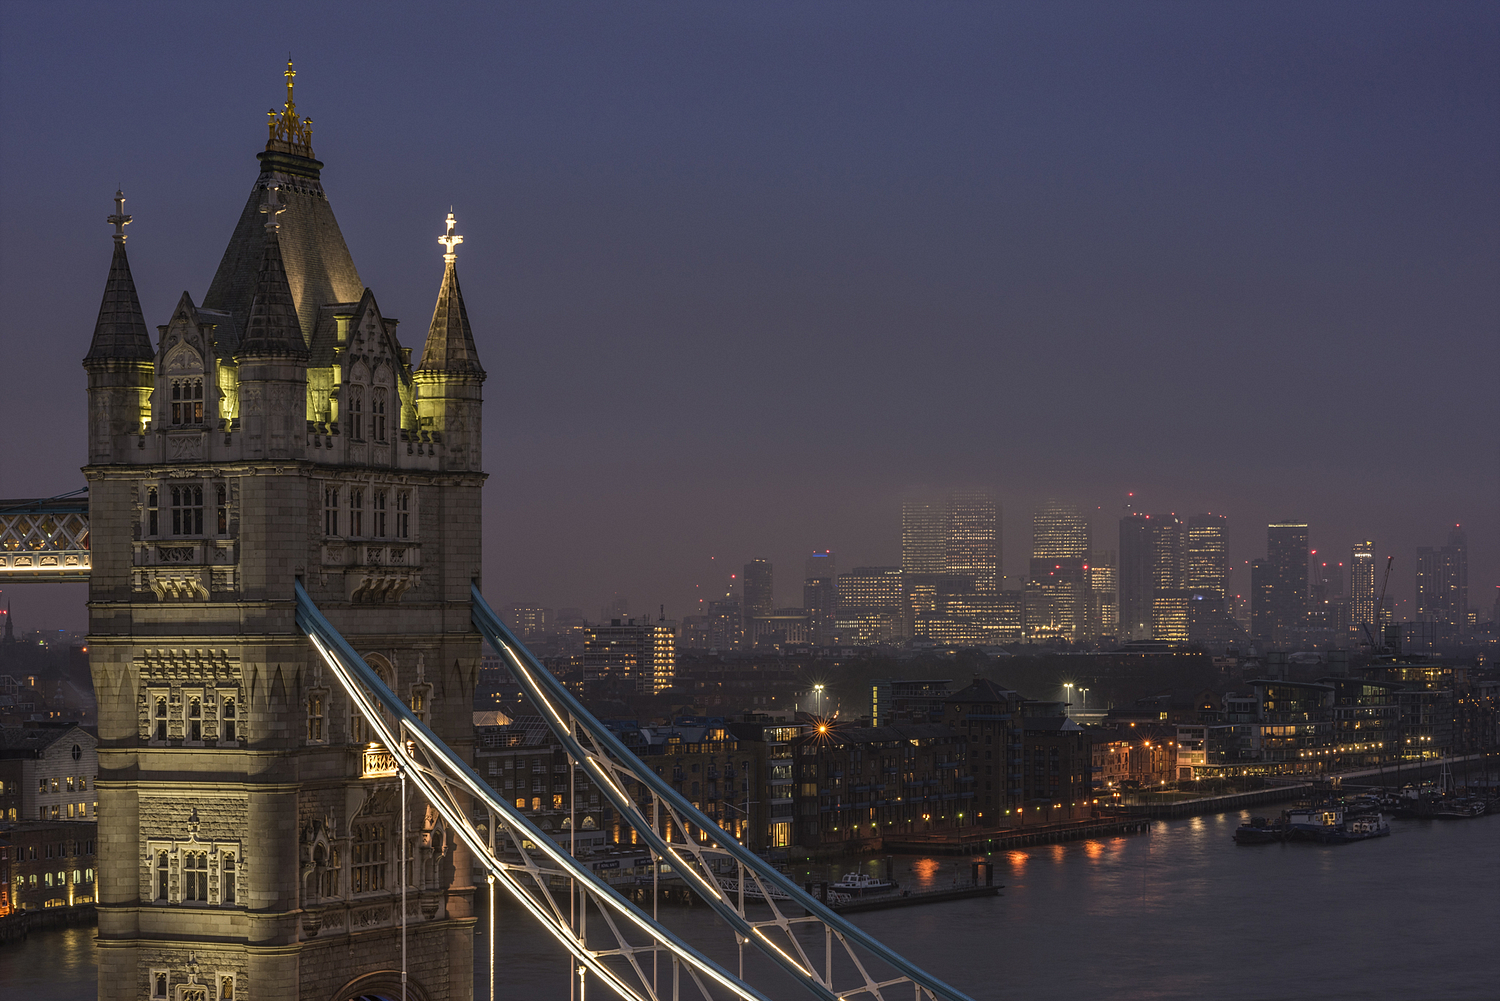 Tower Bridge detail and London skyline at night